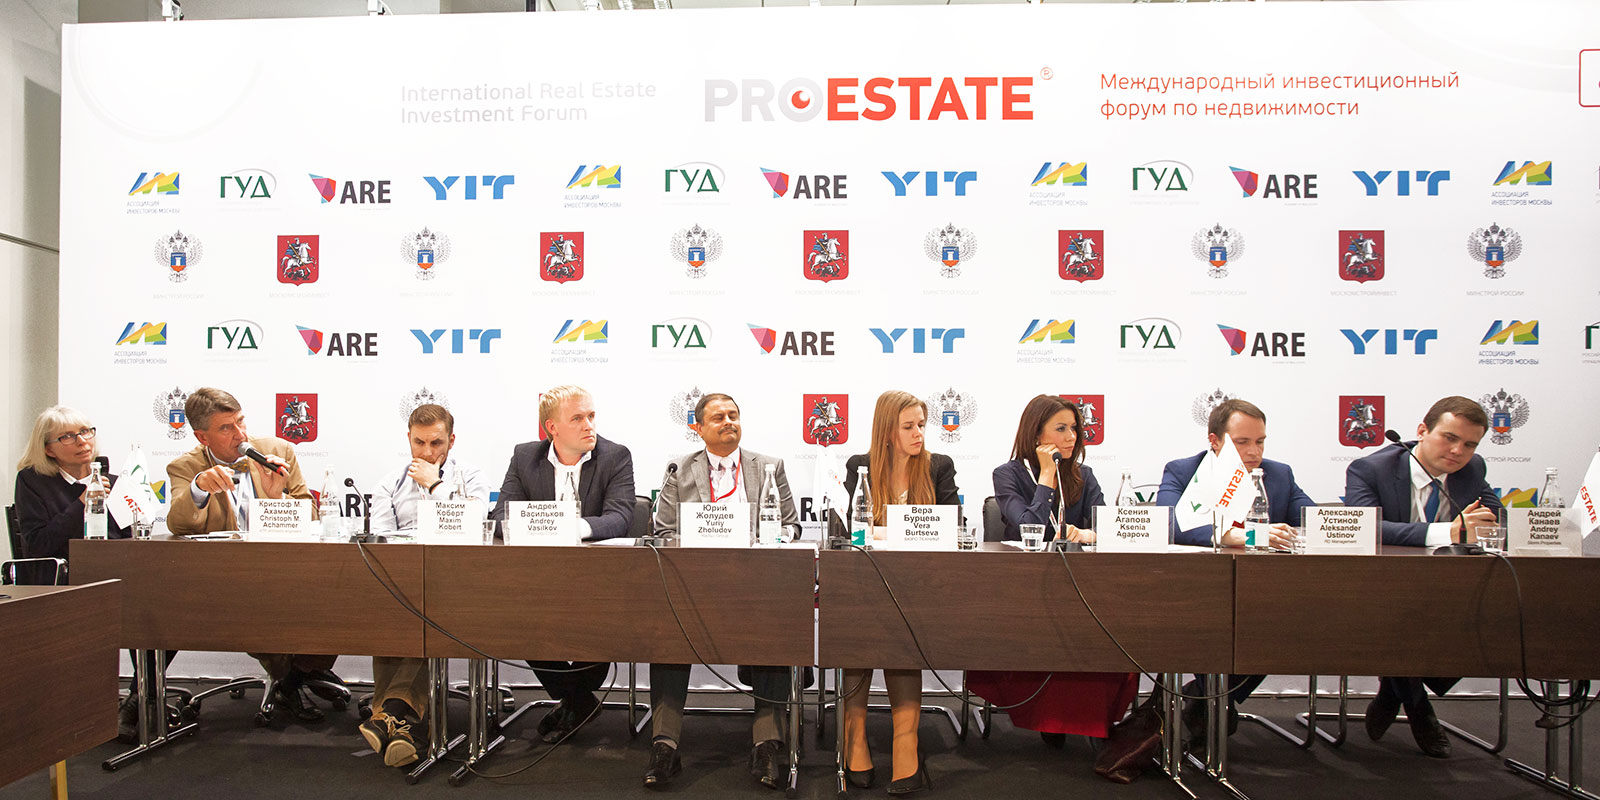 The podium discussion offered visitors insights into the real estate sector. Photo: PROESTATE